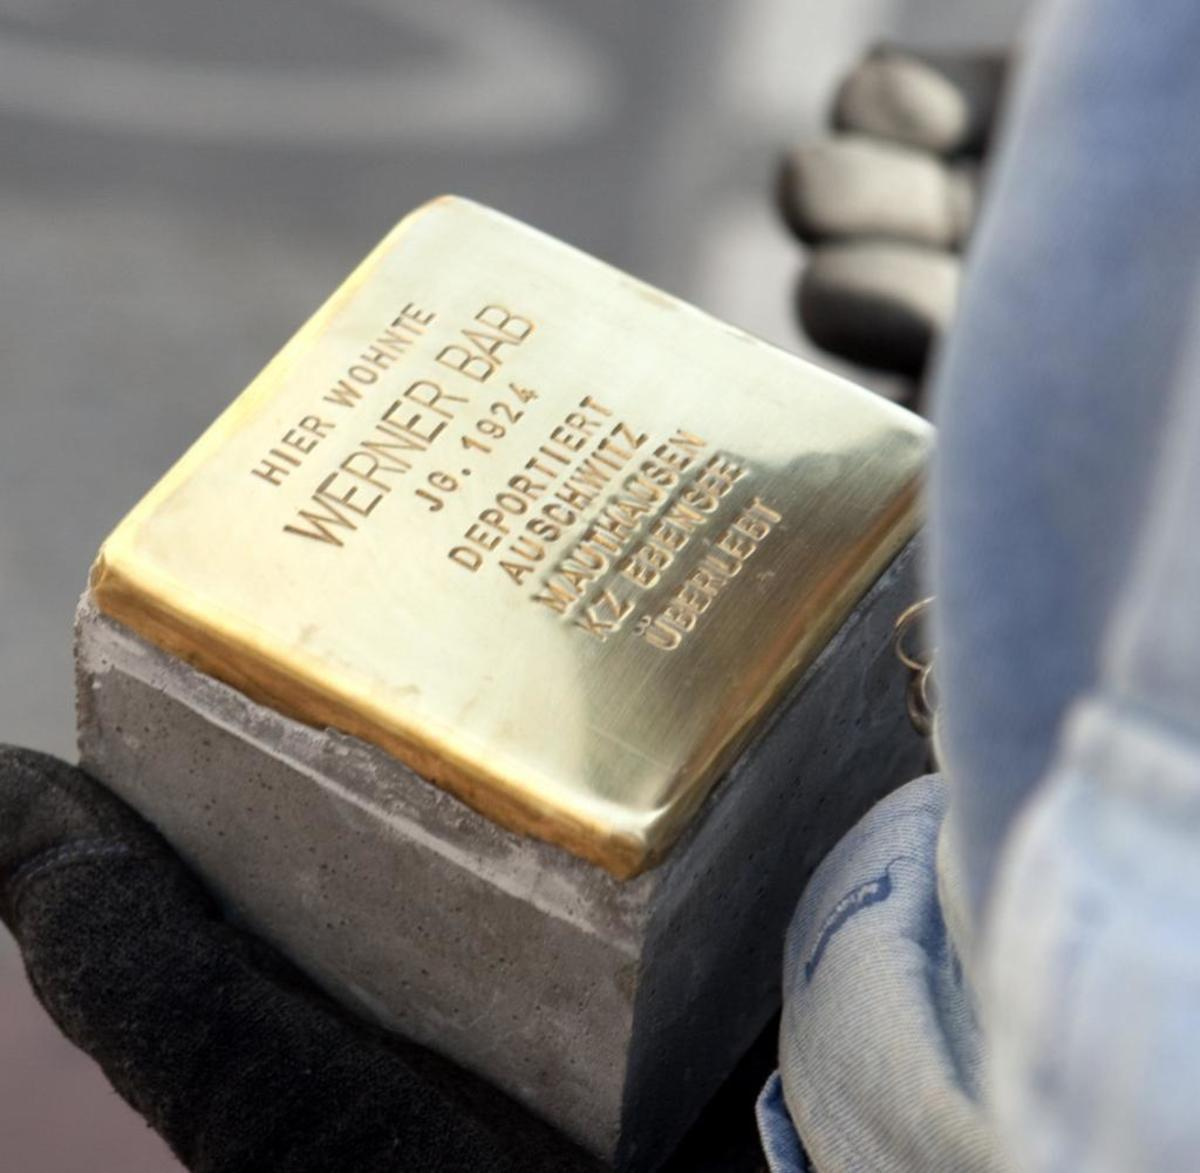 The Importance of Remembering: The Purpose of Stolpersteine or Tripping Stones